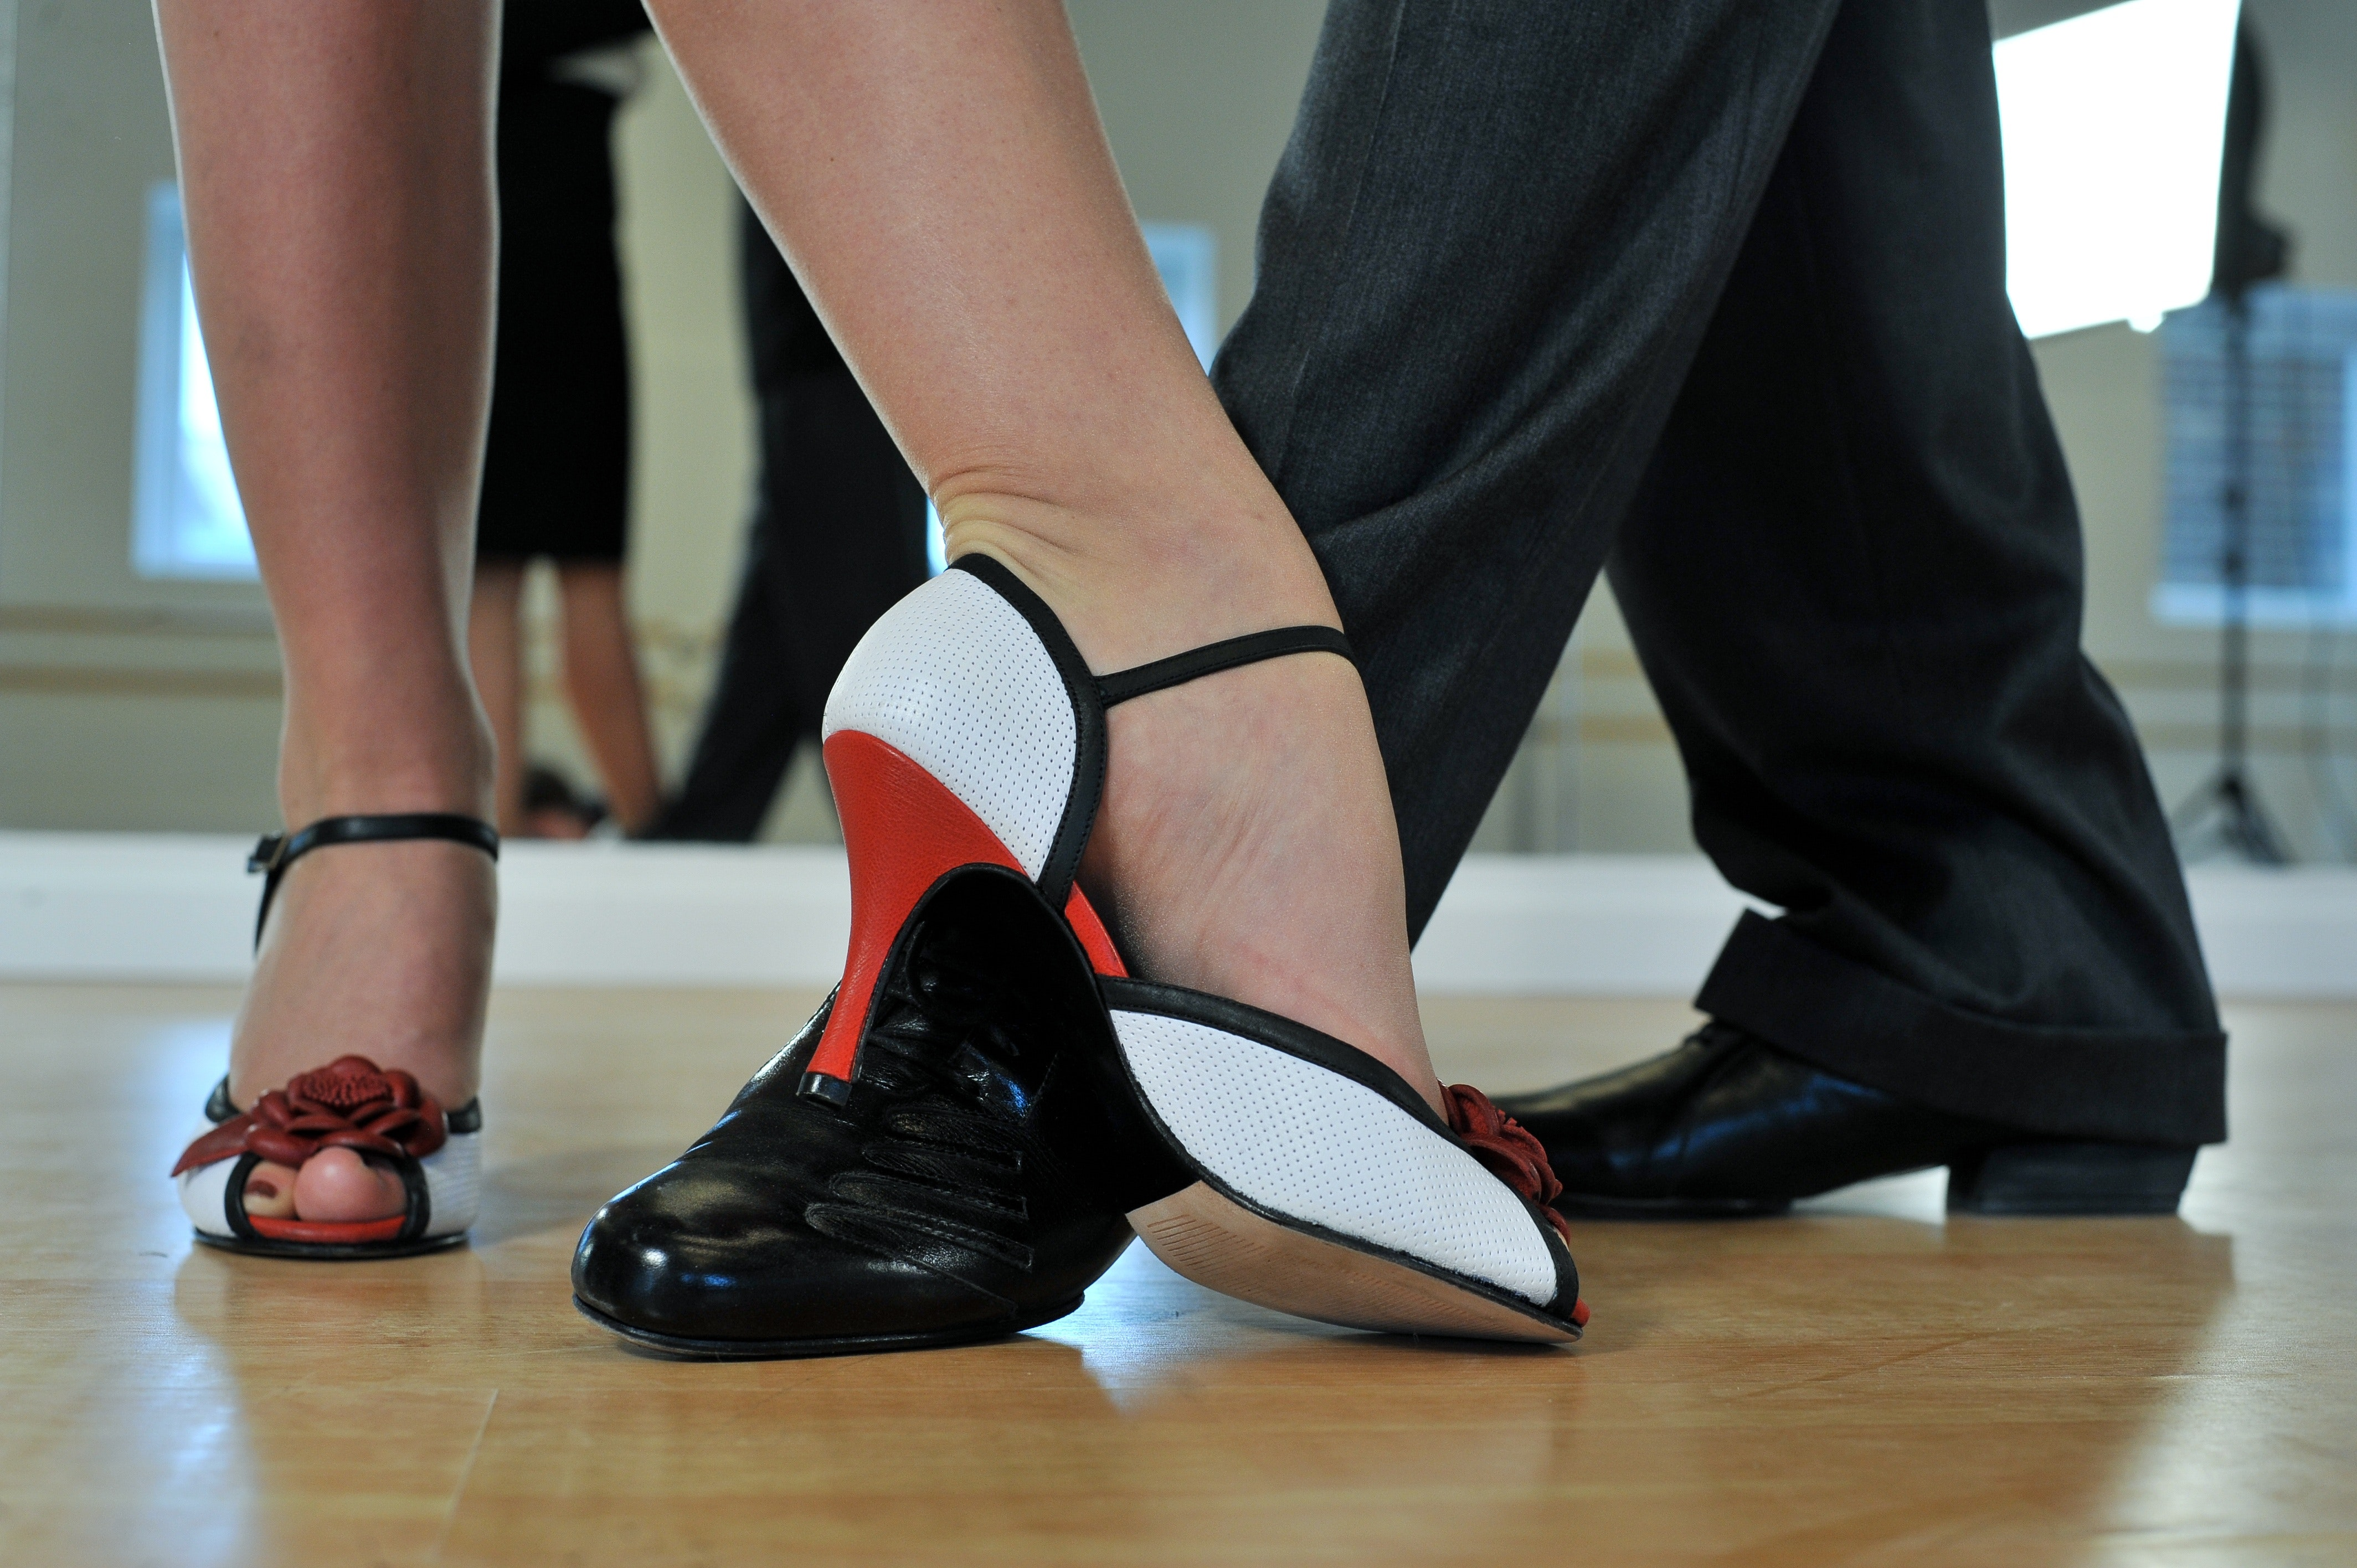 argentine-tango-brussels-couple-358127